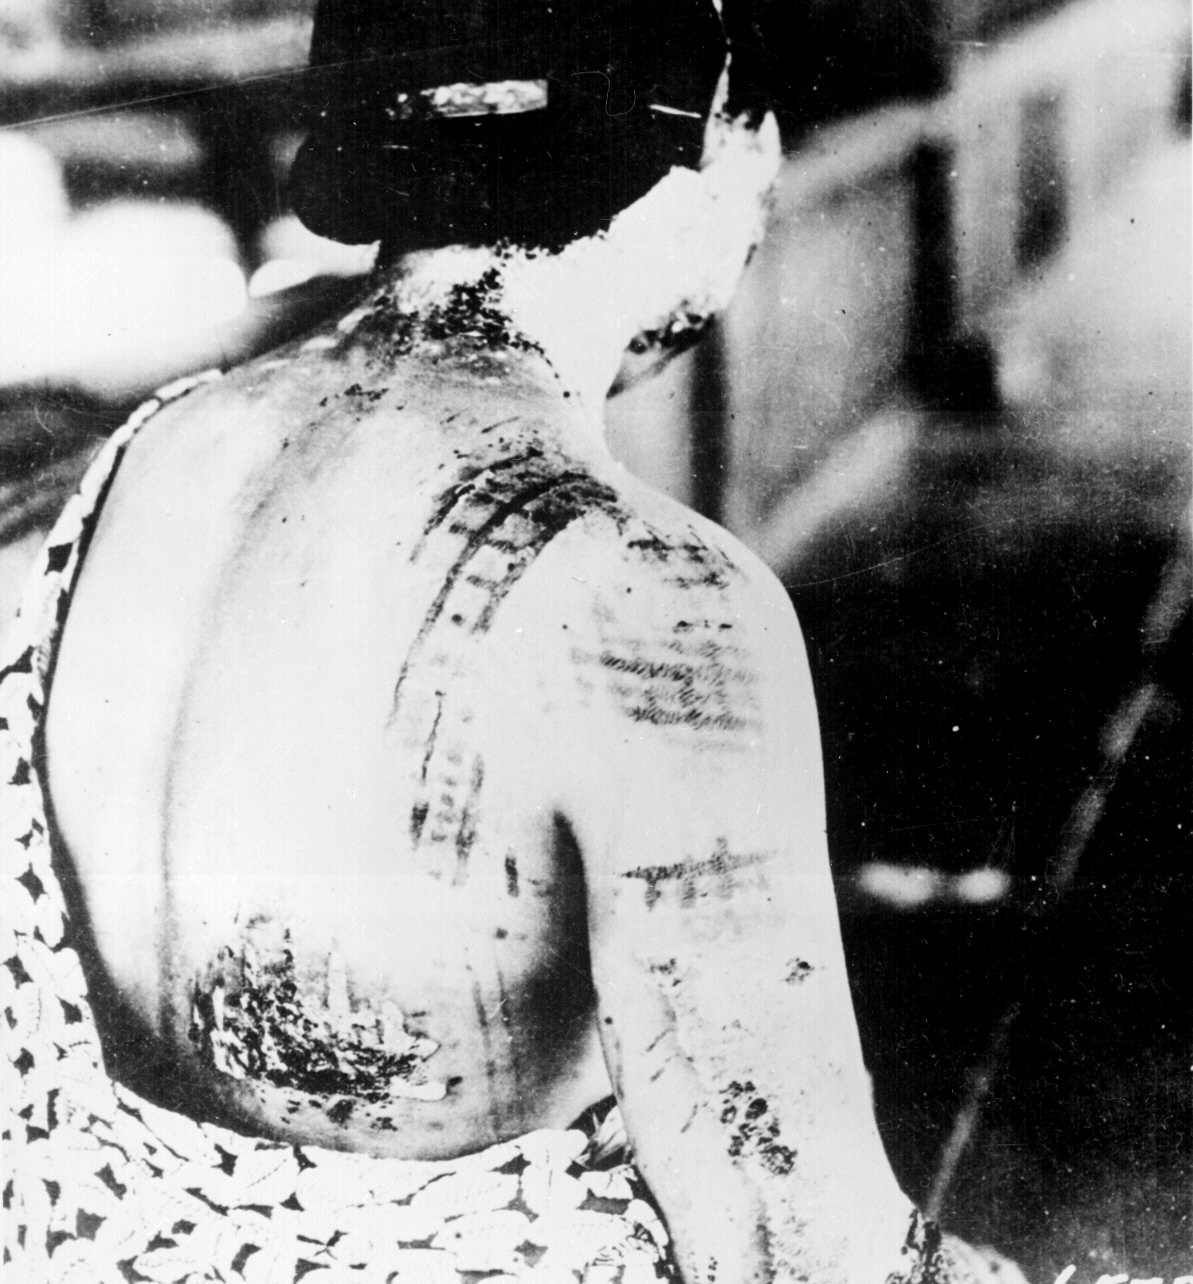 Burns visible on a woman in Hiroshima during the blast, darker colors of her kimono at the time of detonation correspond to clearly visible burns on skin touching parts of the garment exposed to thermal radiation. Since kimonos are not form fitting attire, some parts were not directly touching her skin are visible as breaks in the pattern. As well as tighter fitting areas approaching the waistline where the pattern is much more defined.